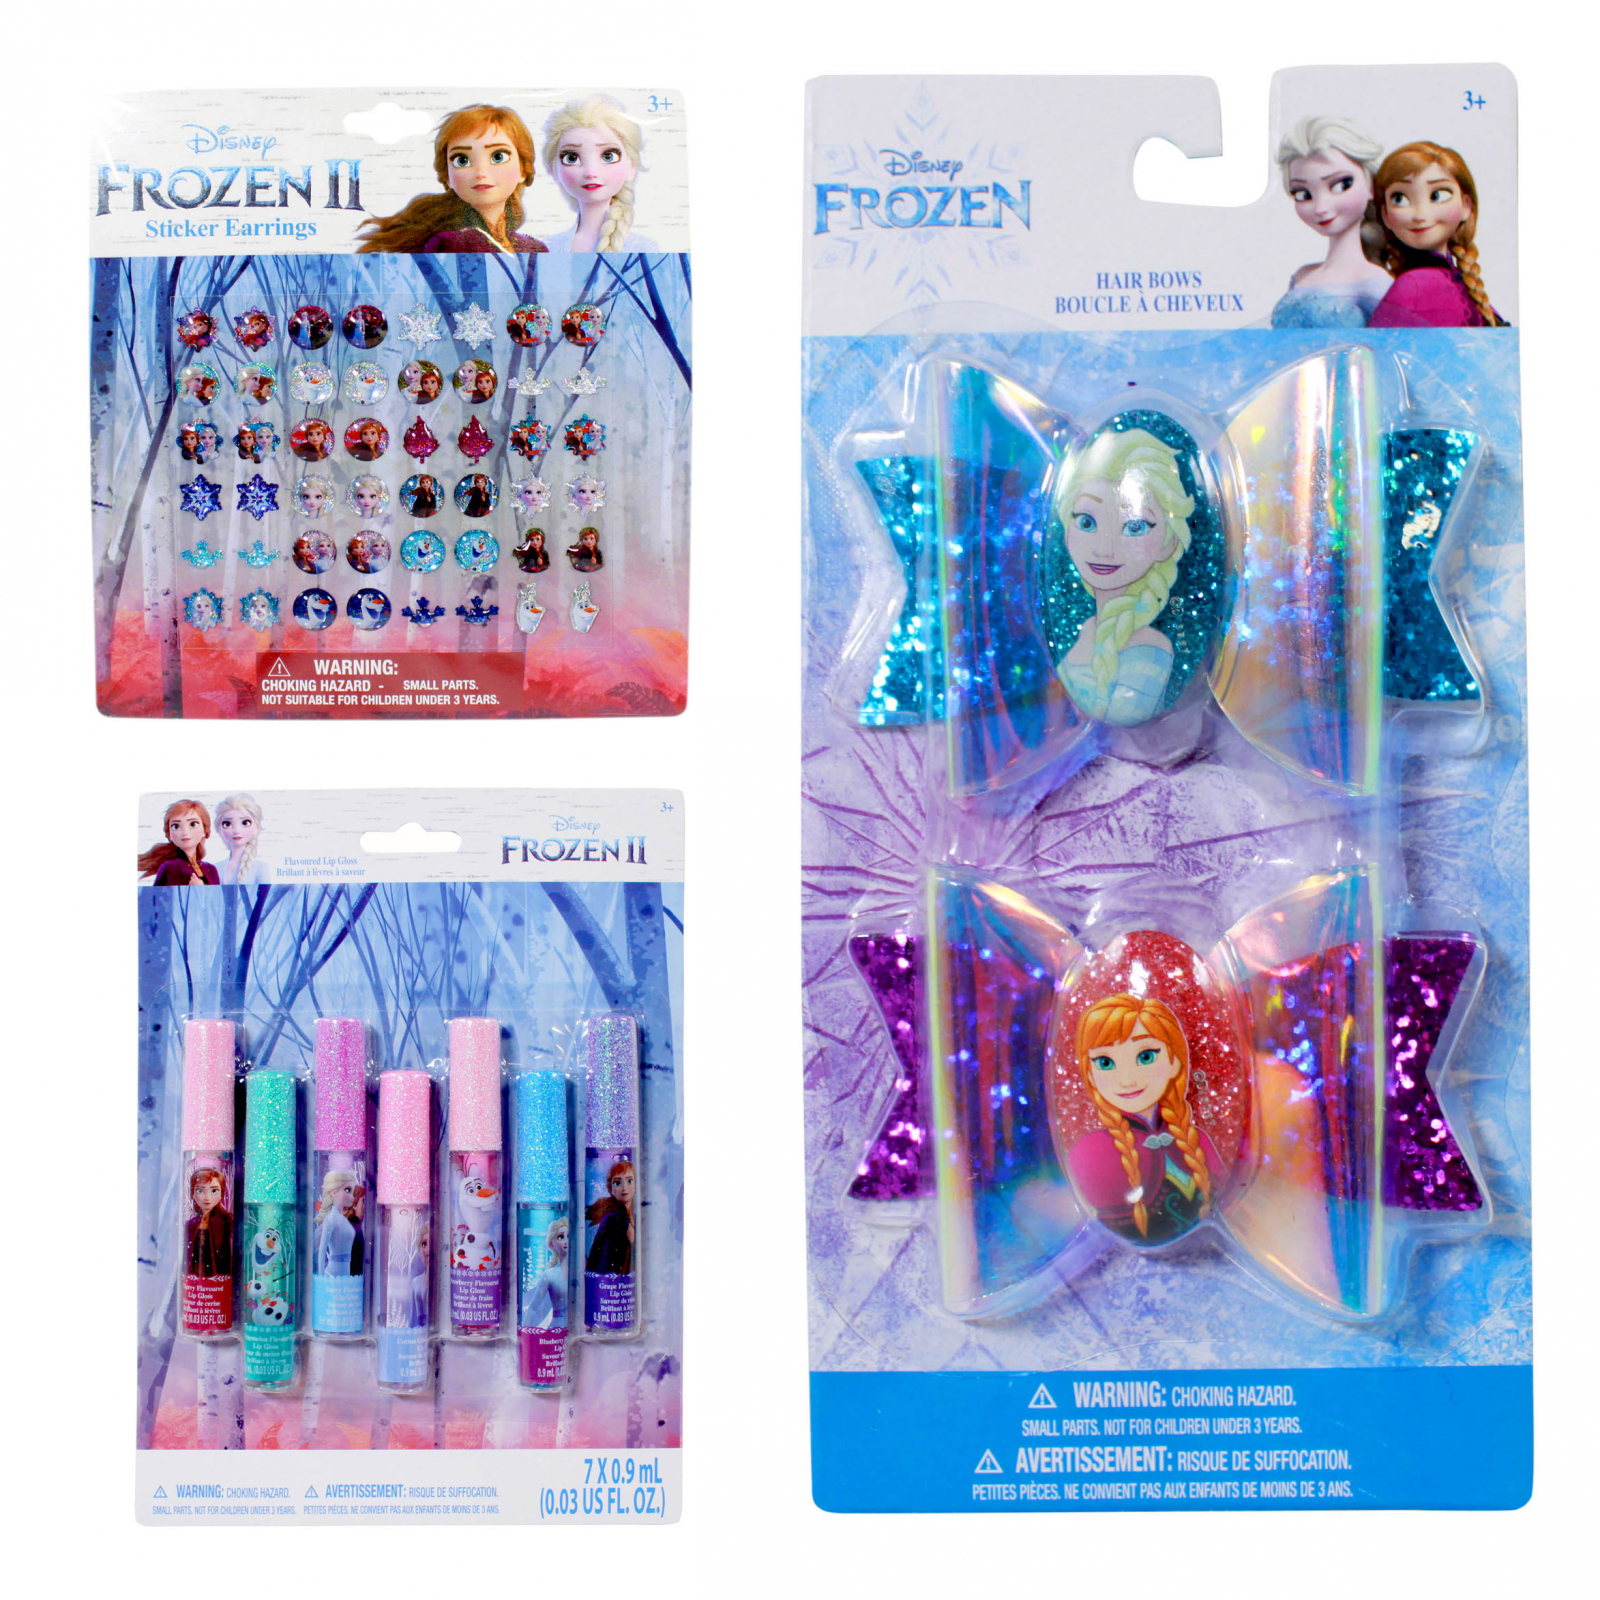 Disney Frozen 2 Girls Dress Up Bows Lip Gloss Earrings 33pc